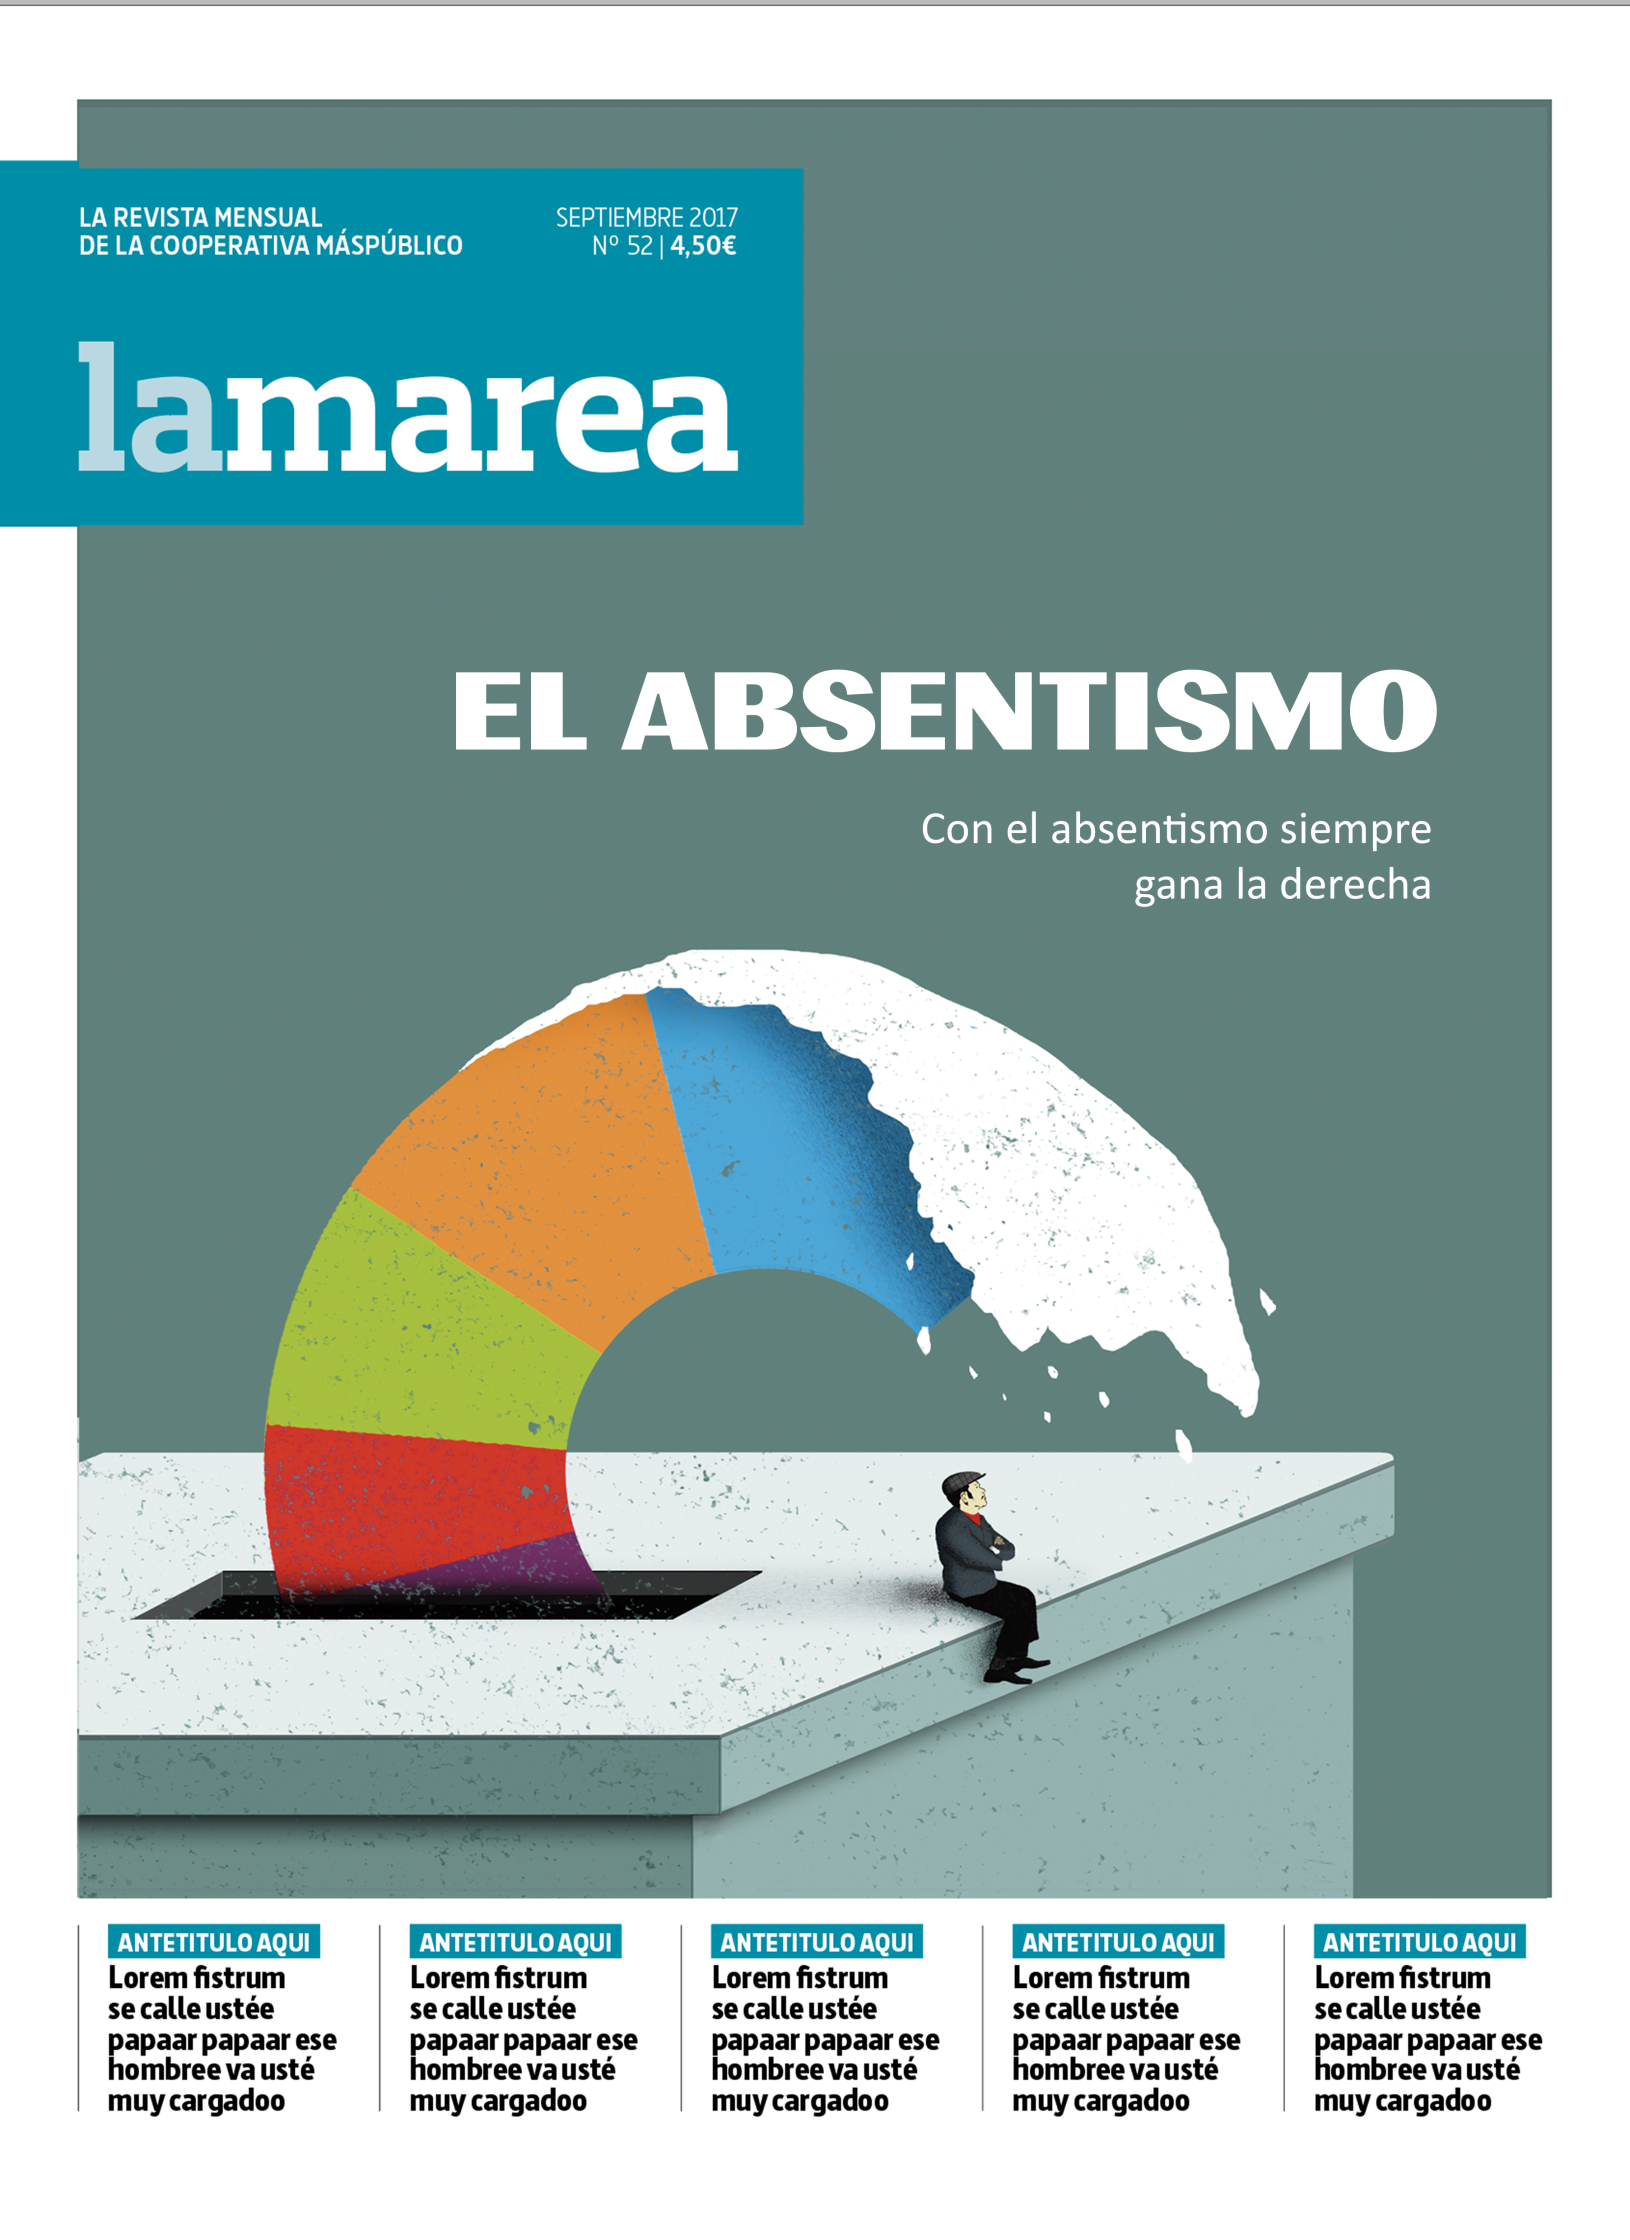 Cover for La Marea (Absenteeism).jpg